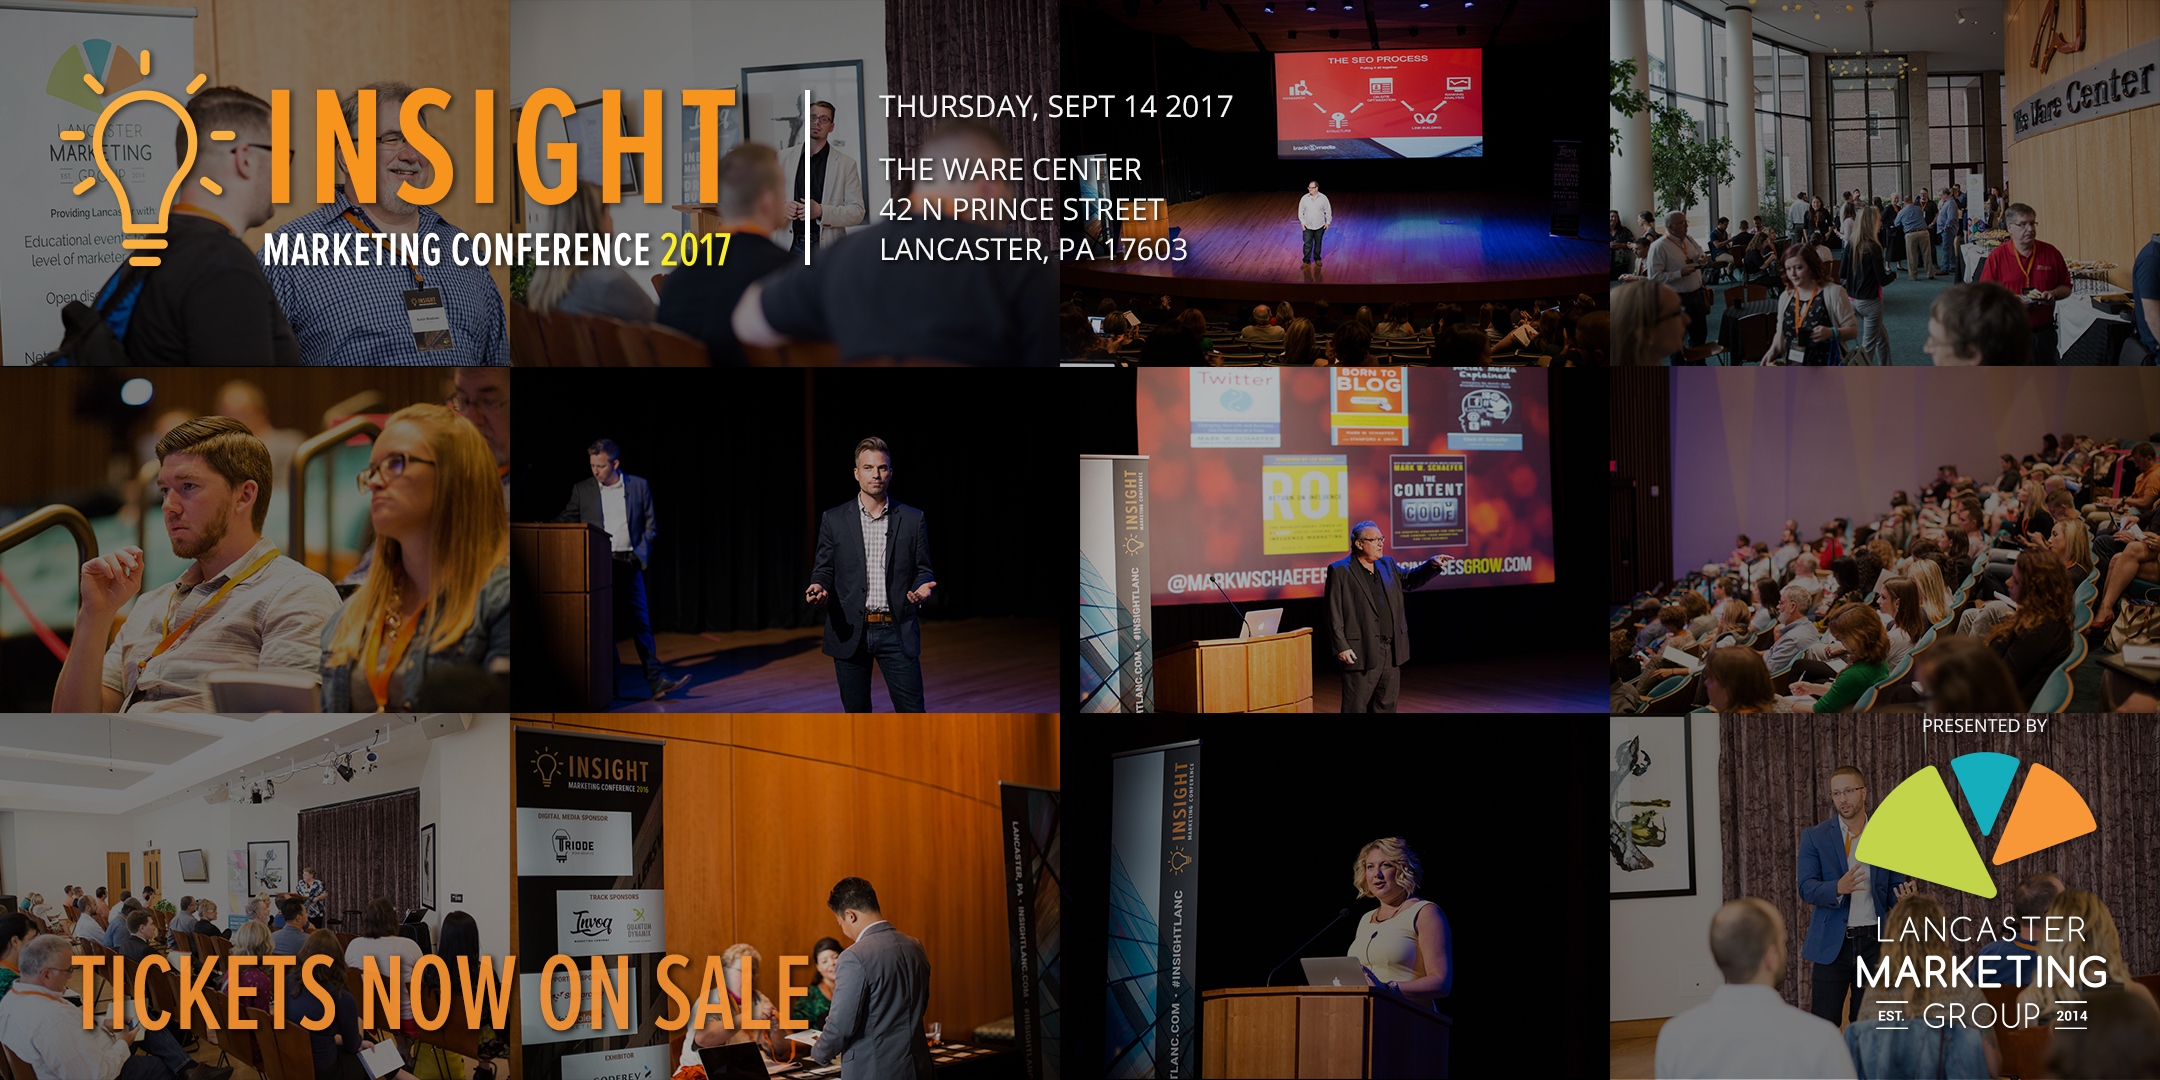 Insight Marketing Conference